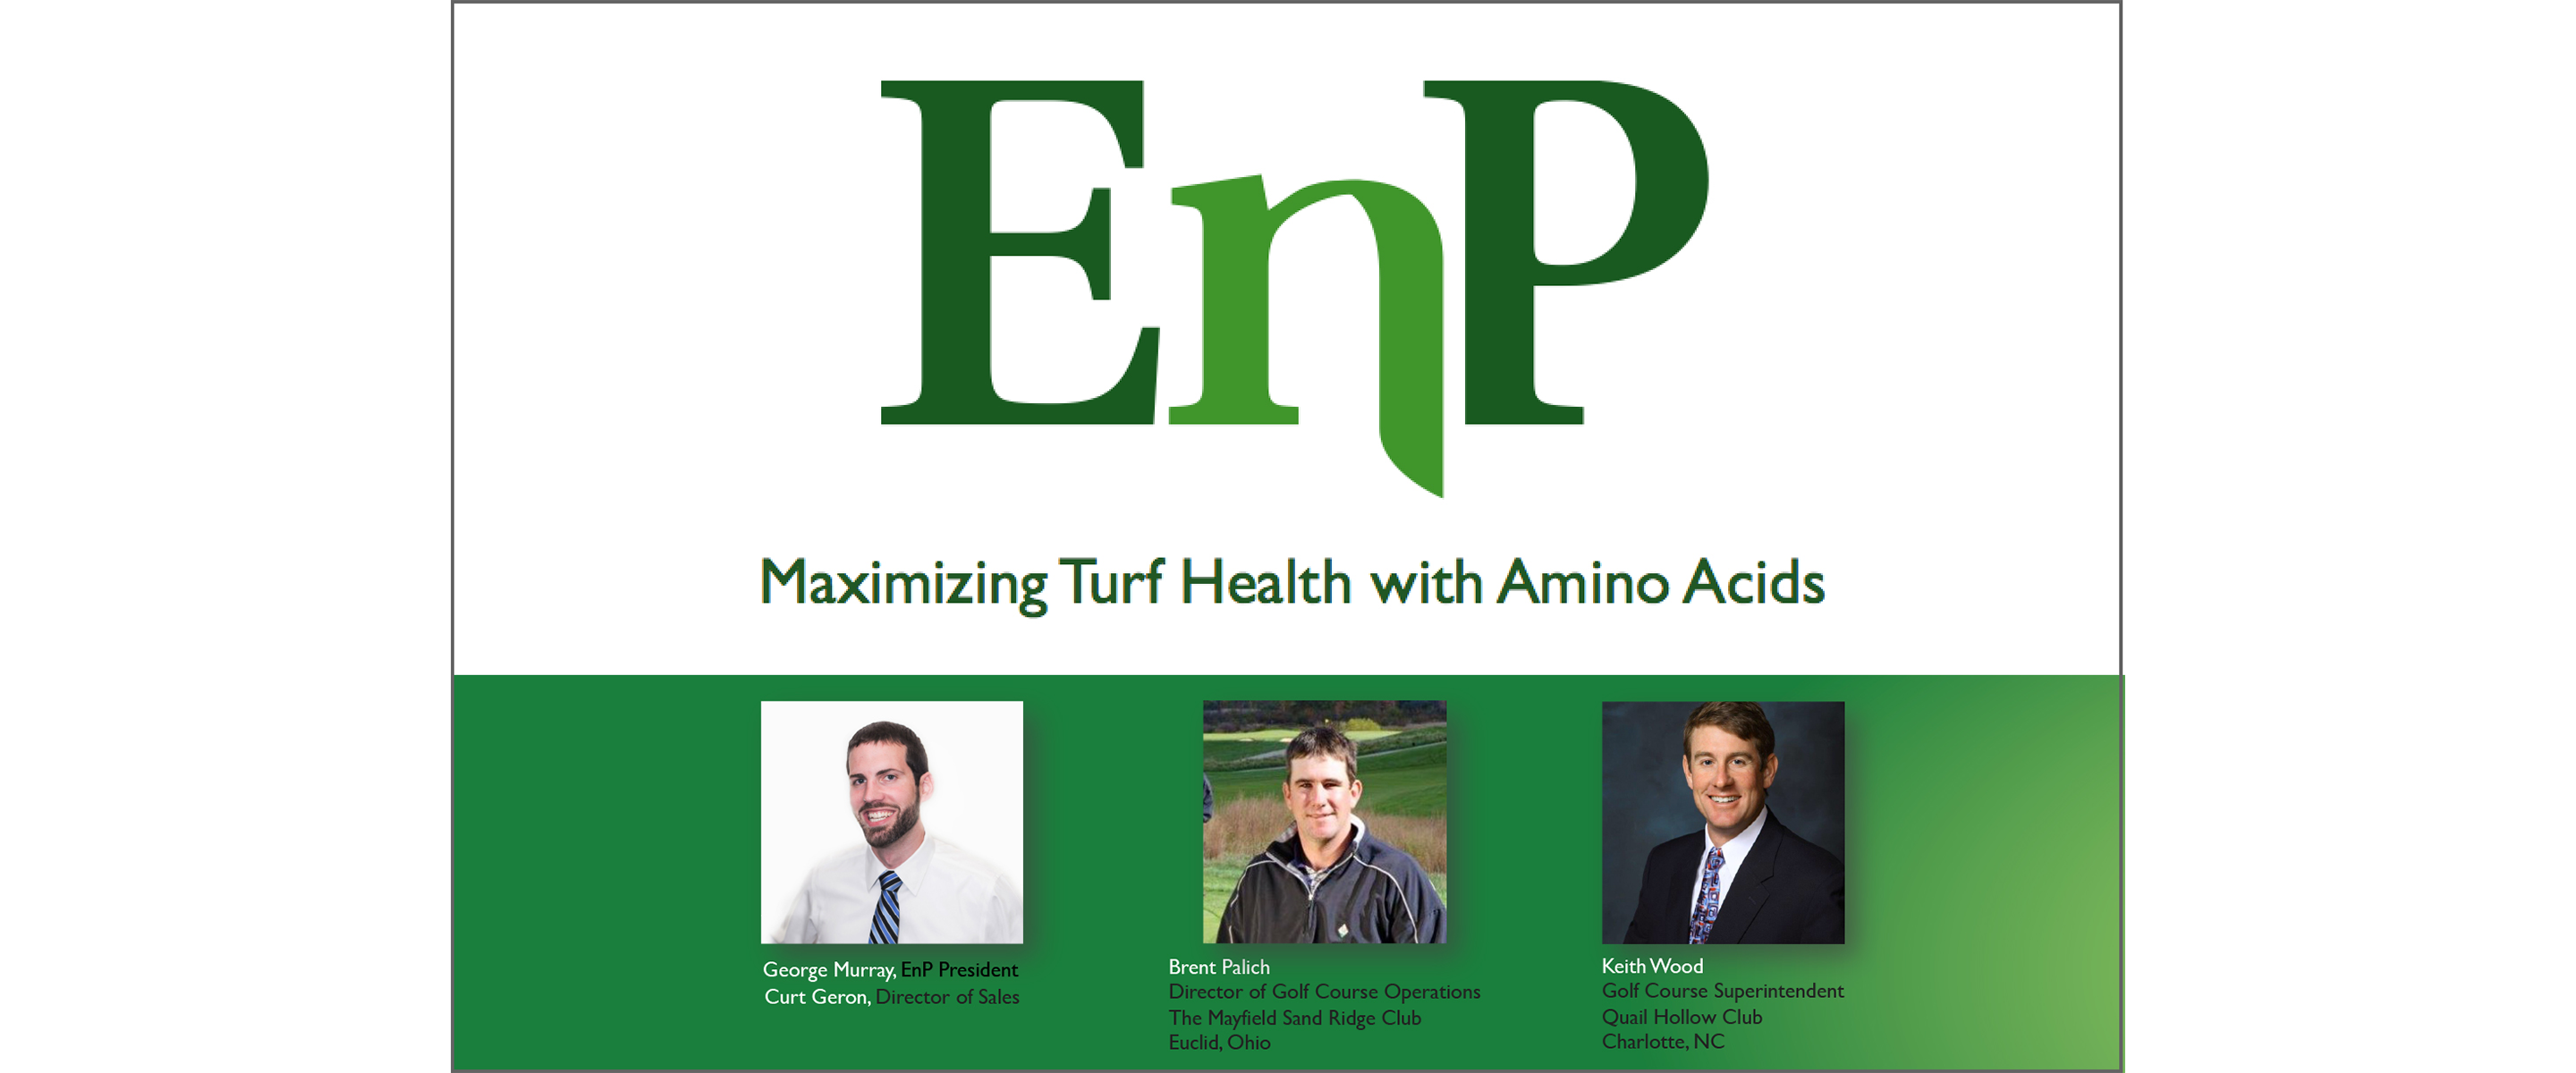 MAXIMIZING TURF HEALTH WITH AMINO ACIDS